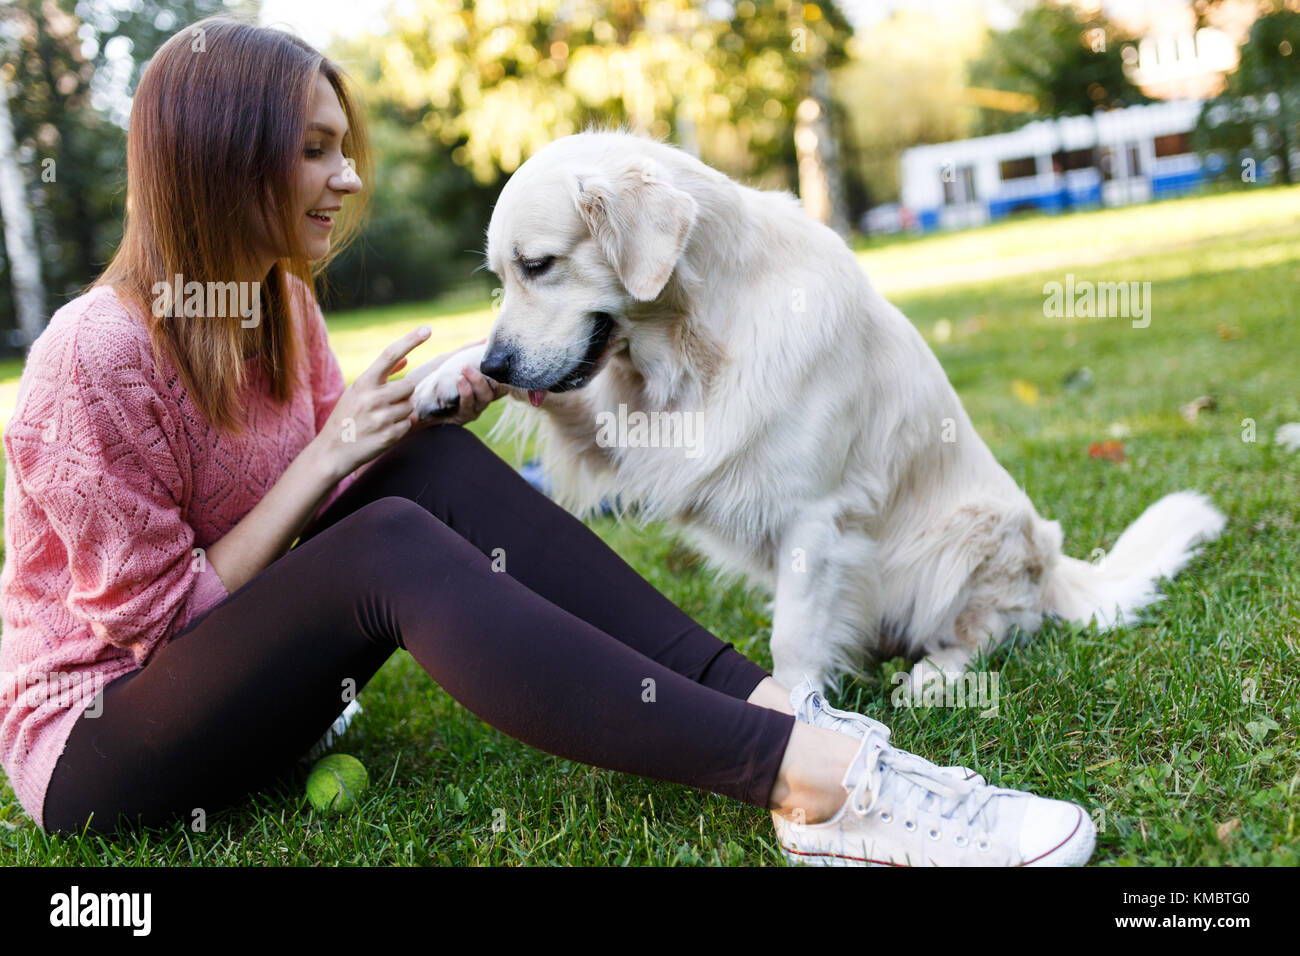 Photo of woman on walk with labrador giving paw - Stock Image